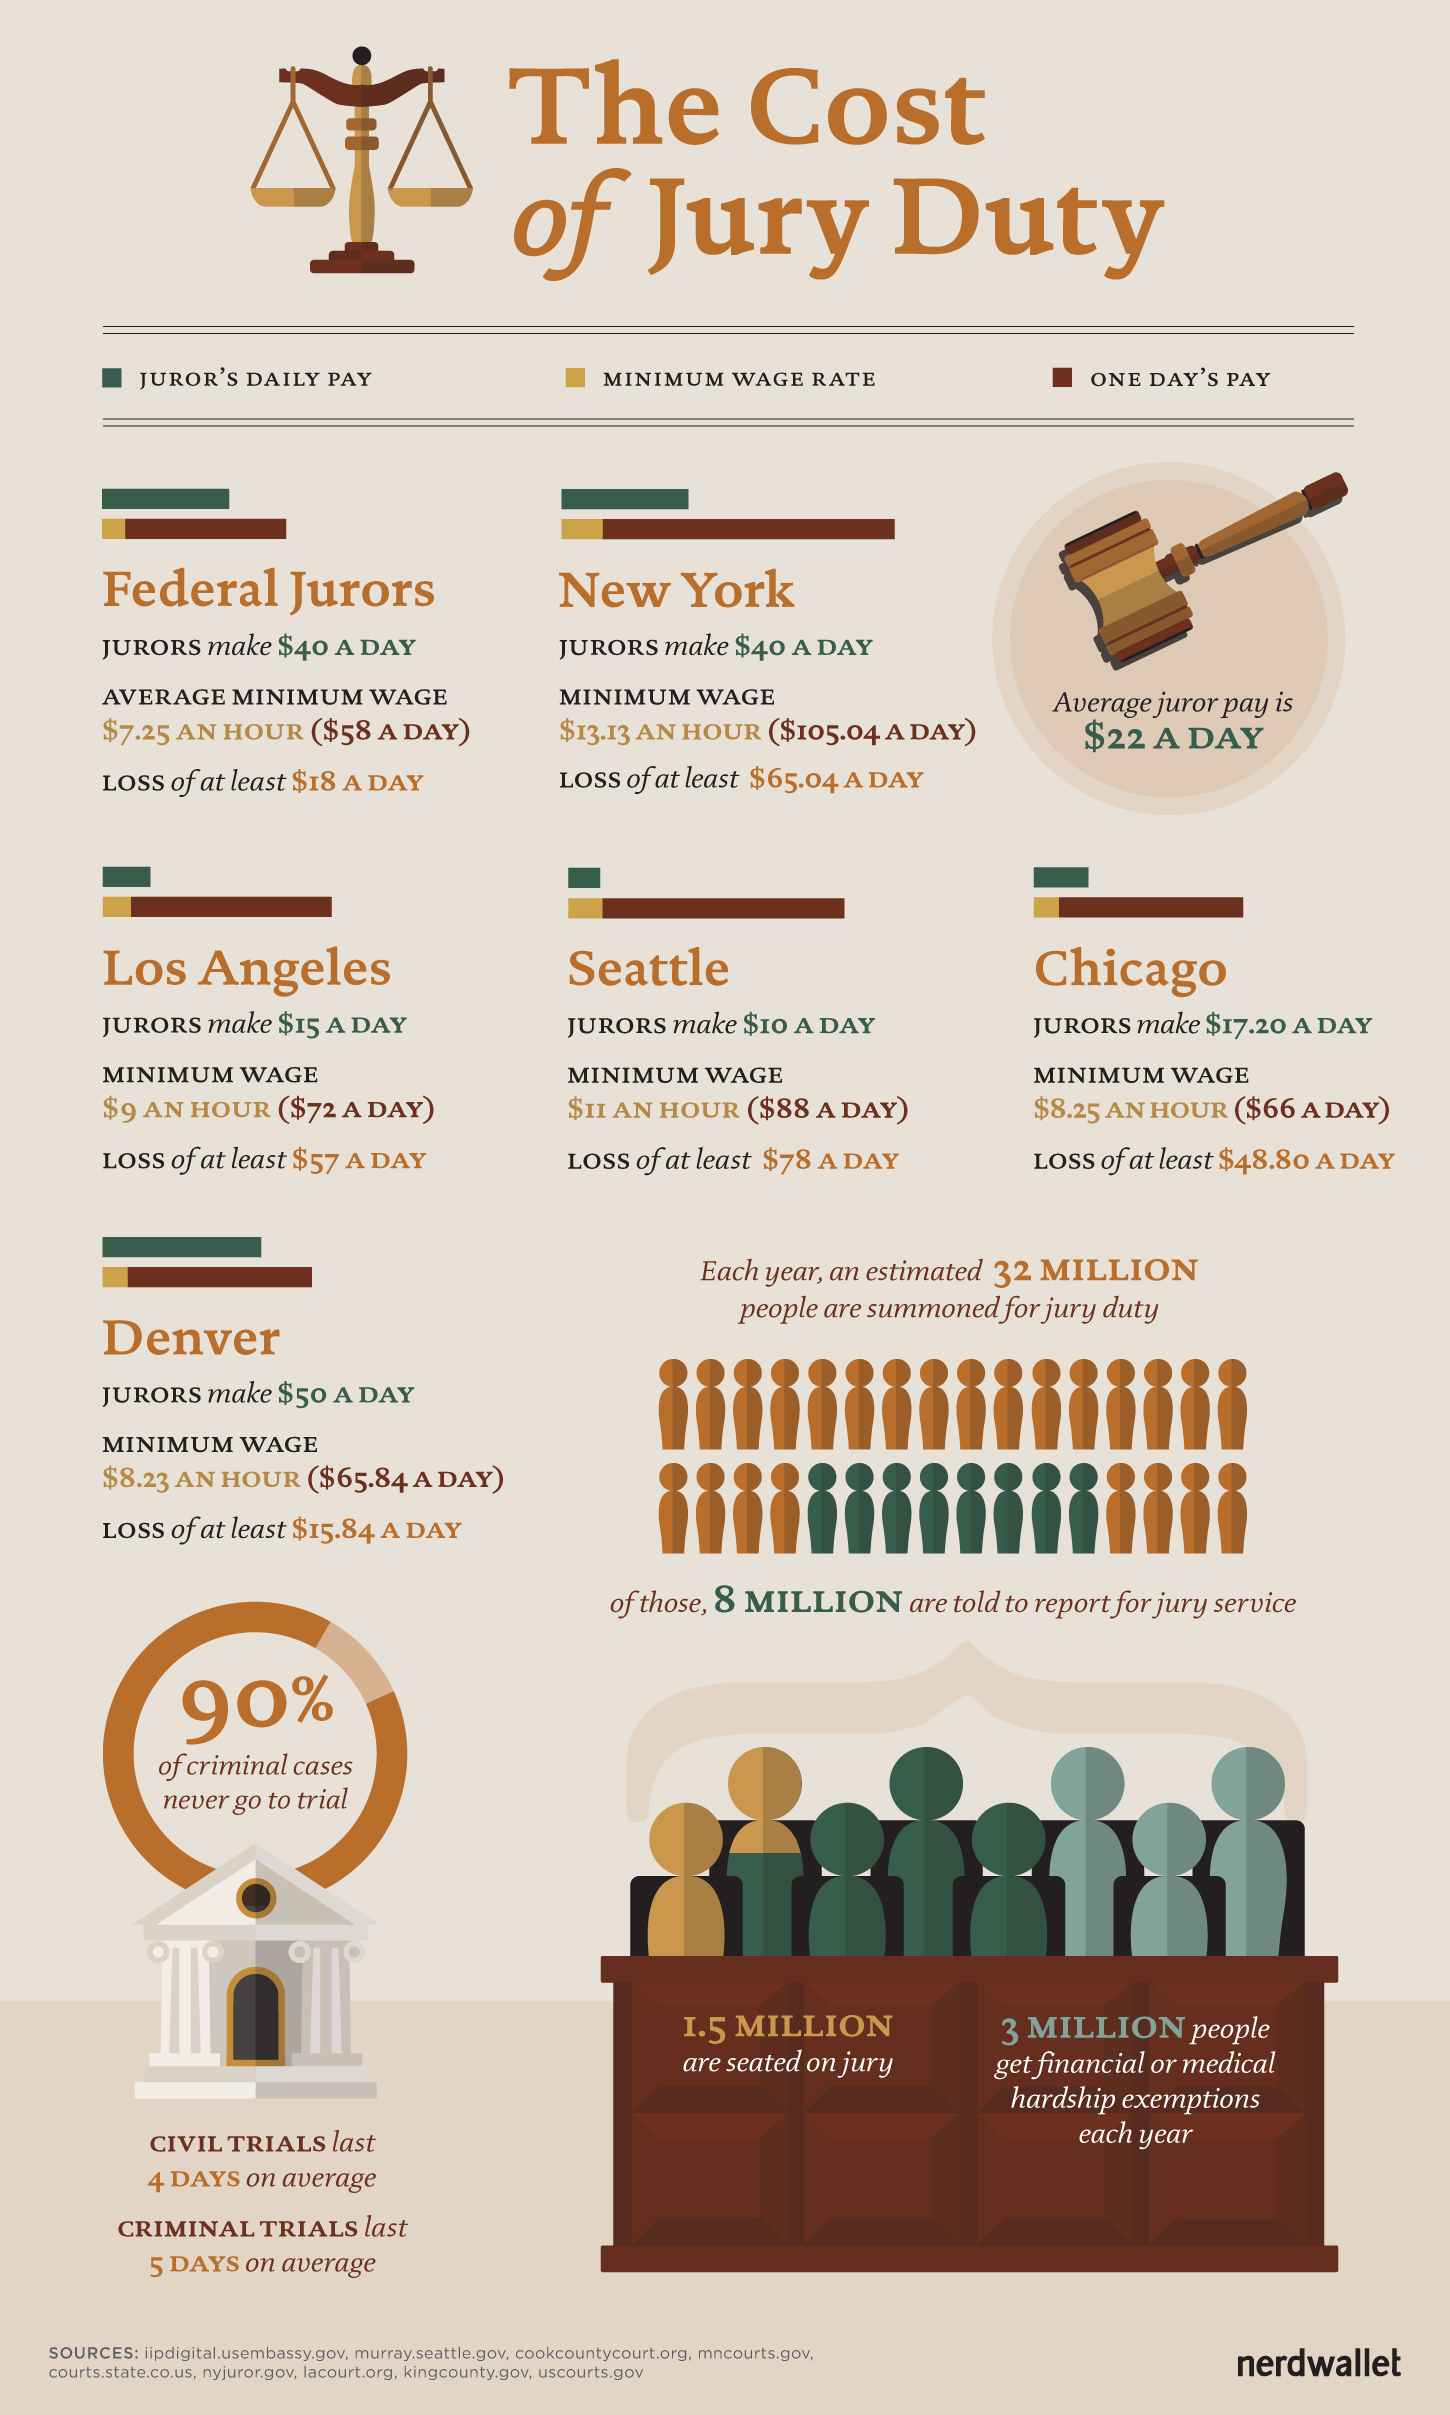 The Cost of Jury Duty - NerdWallet